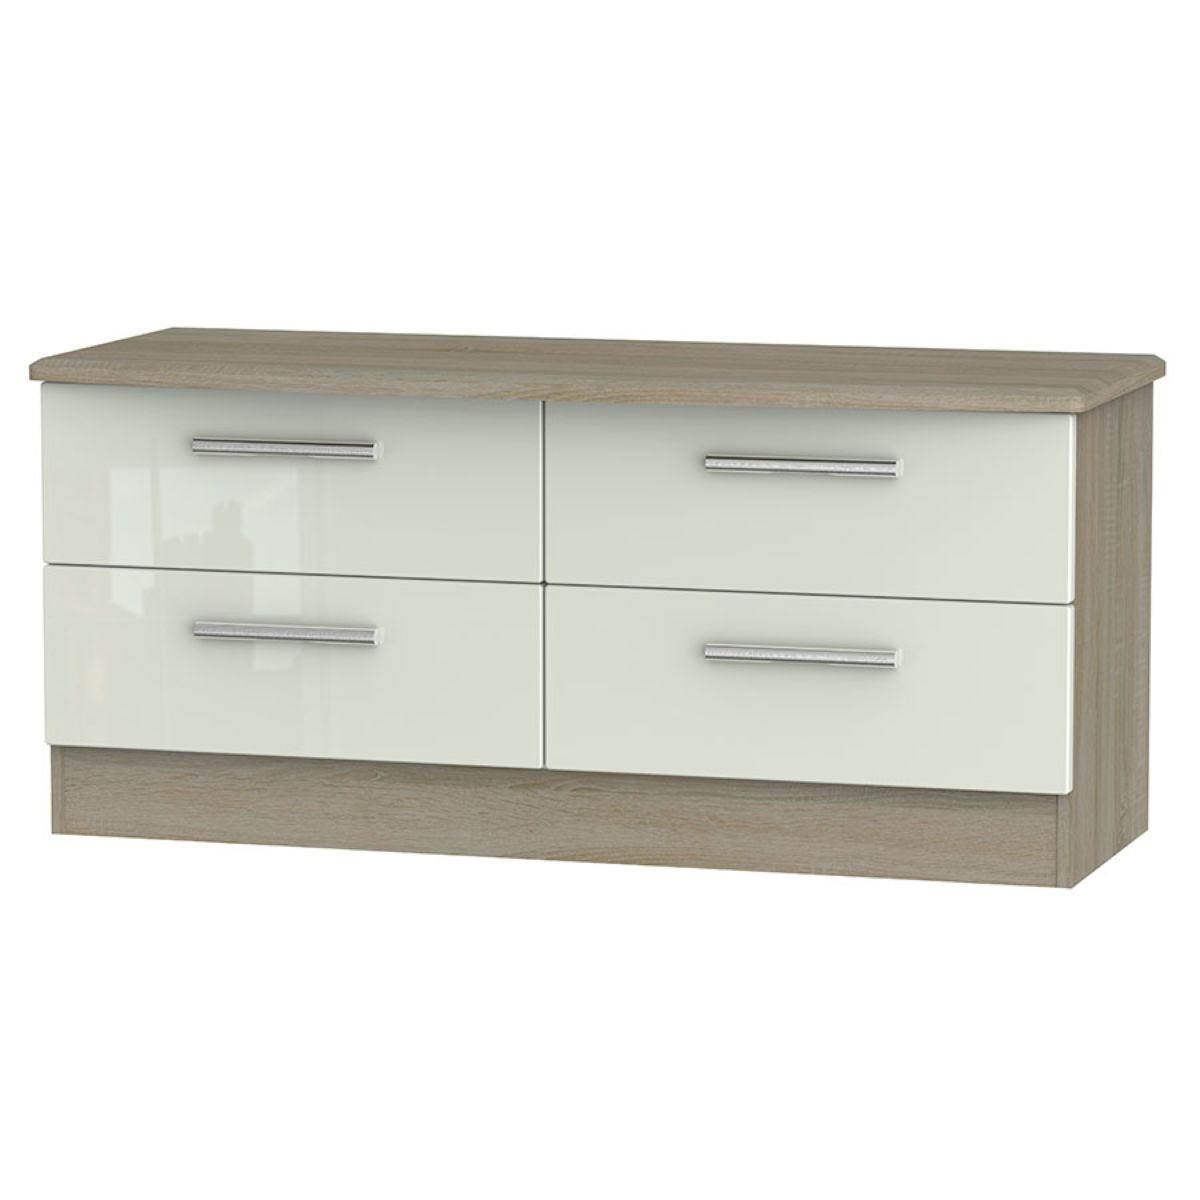 Kirkhill 4-Drawer Midi Chest of Drawers - Taupe Cedar